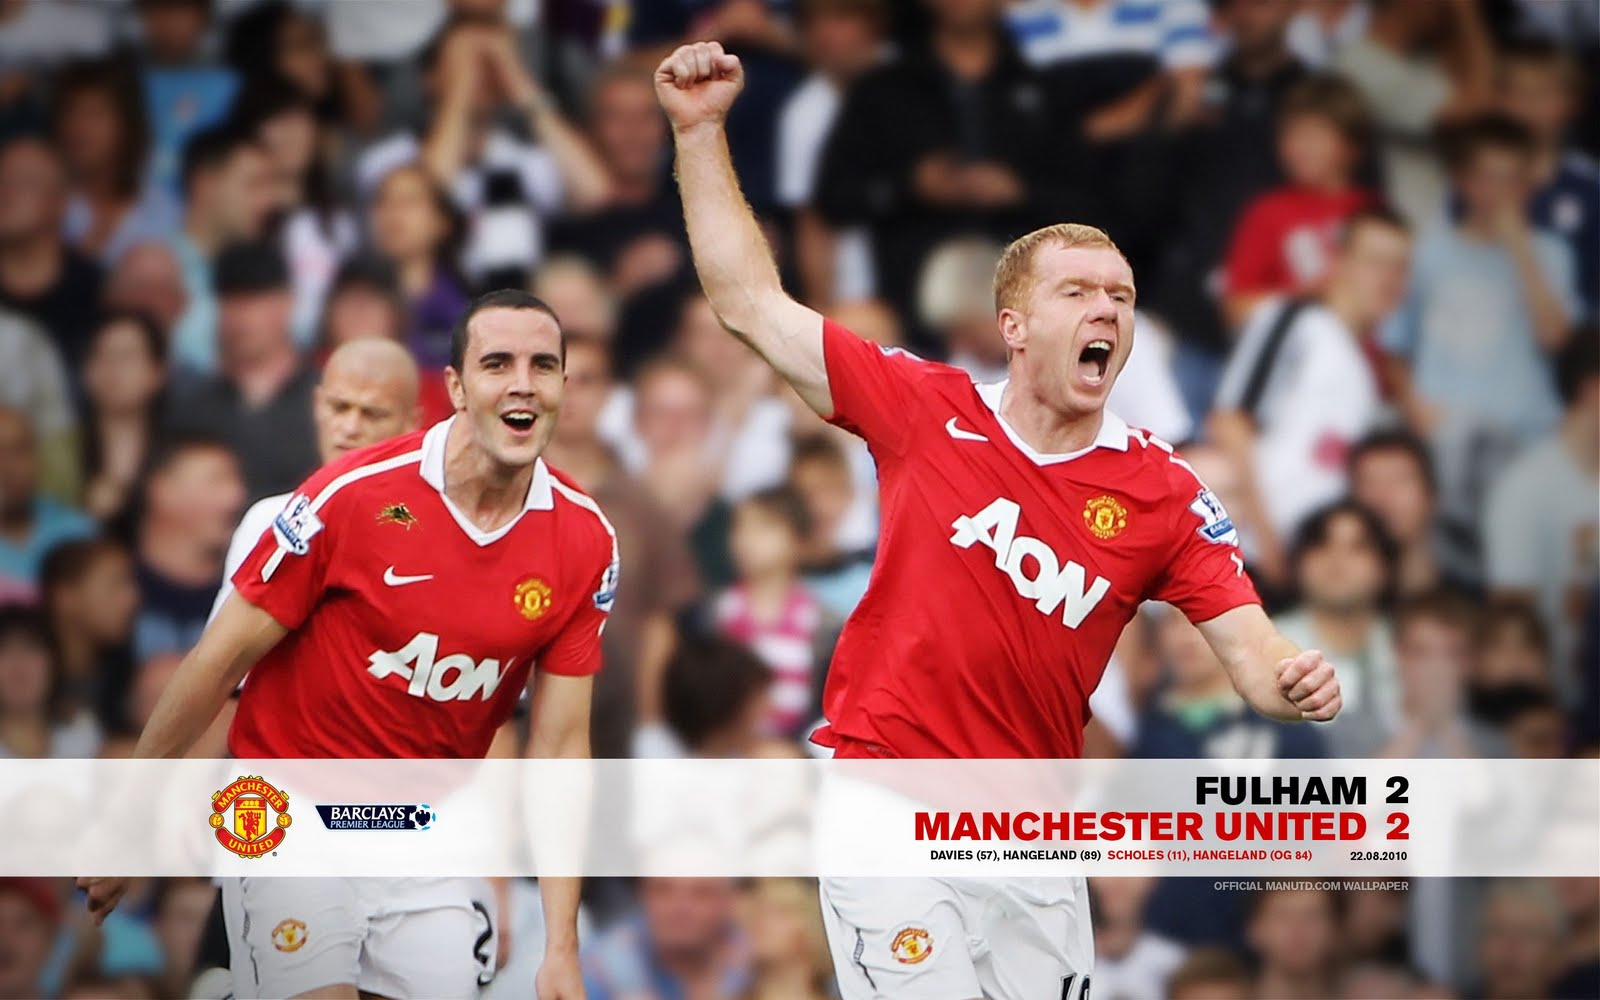 manchester united wallpaper android phone  Fulham Vs Manchester